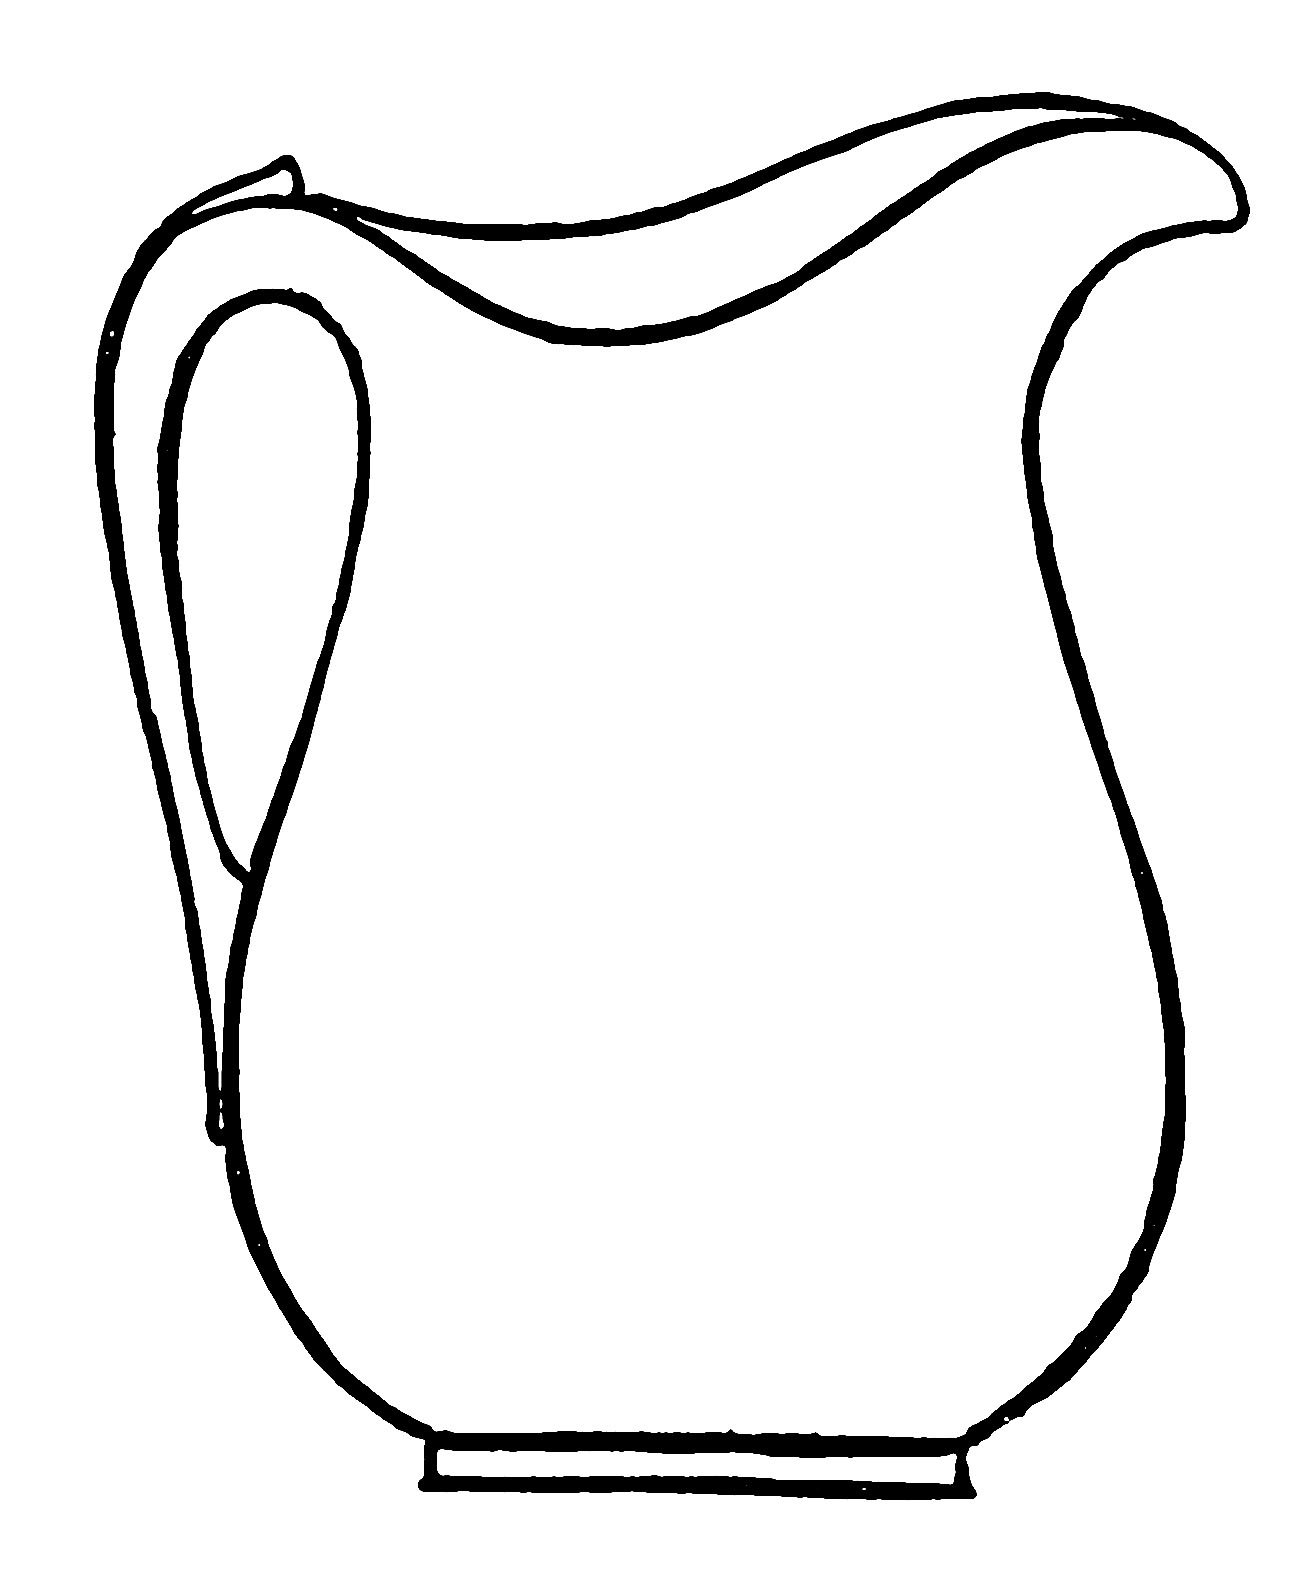 Pitcher clipart #18, Download drawings